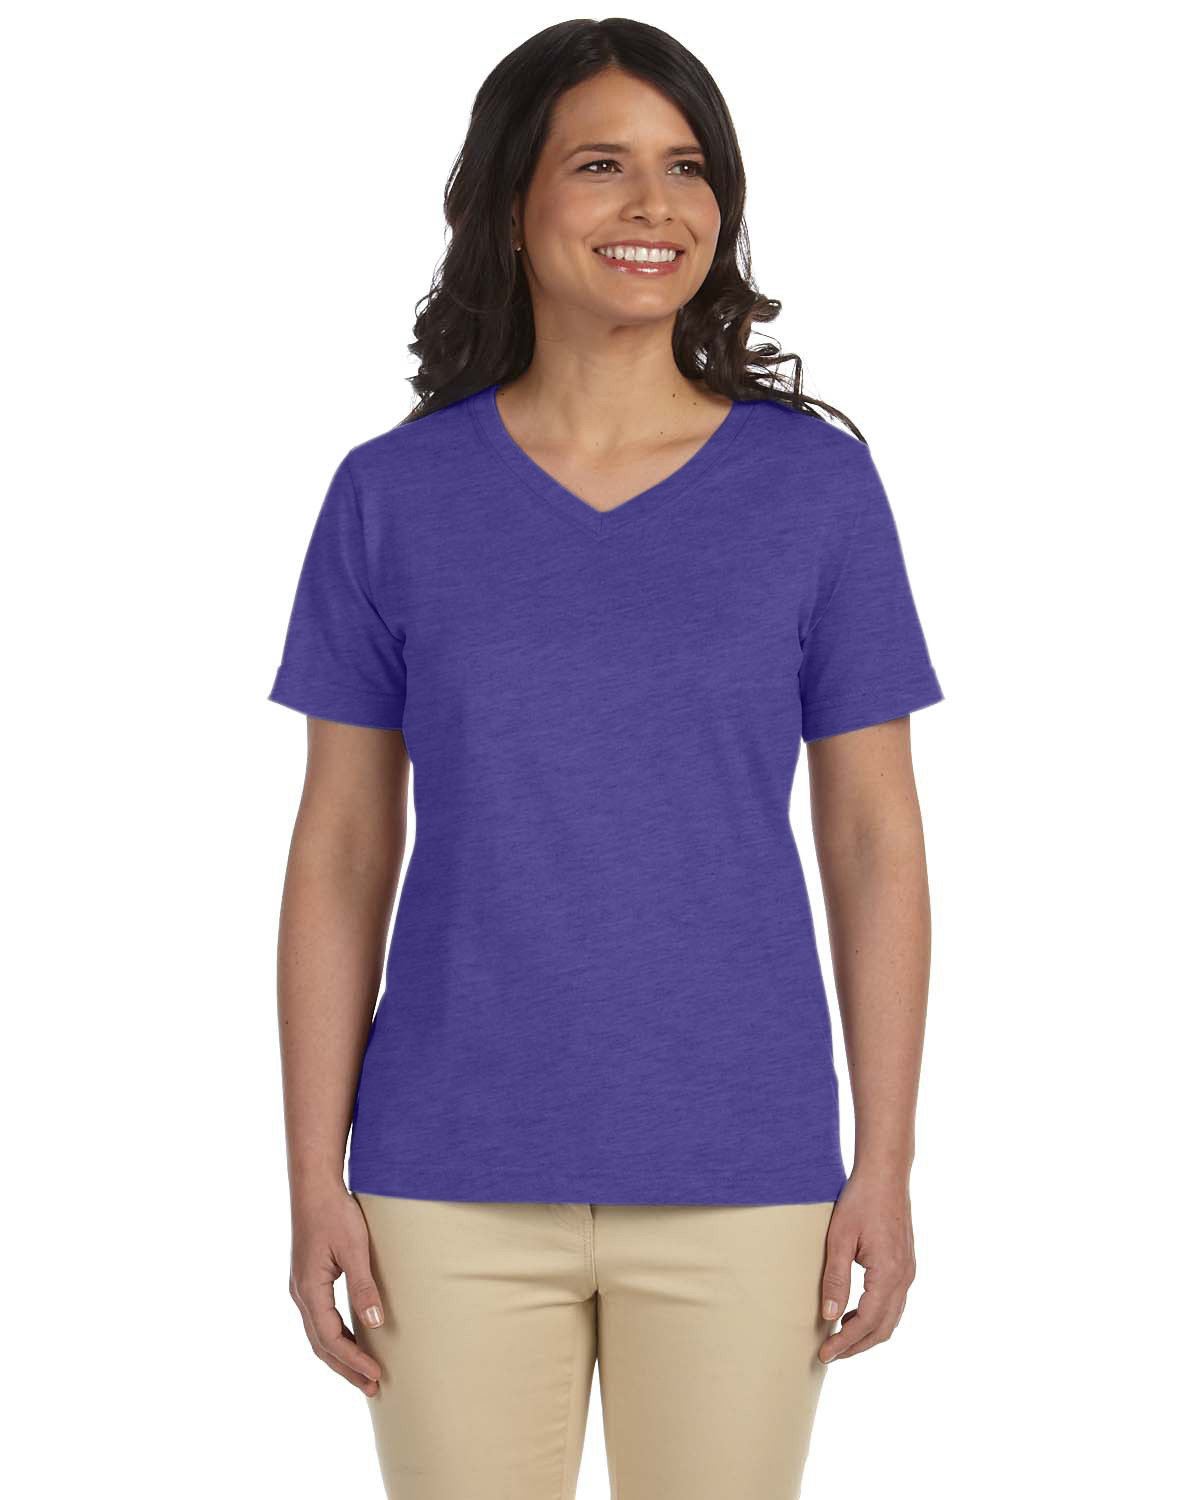 LAT Ladies' Premium Jersey V-Neck T-Shirt VINTAGE PURPLE